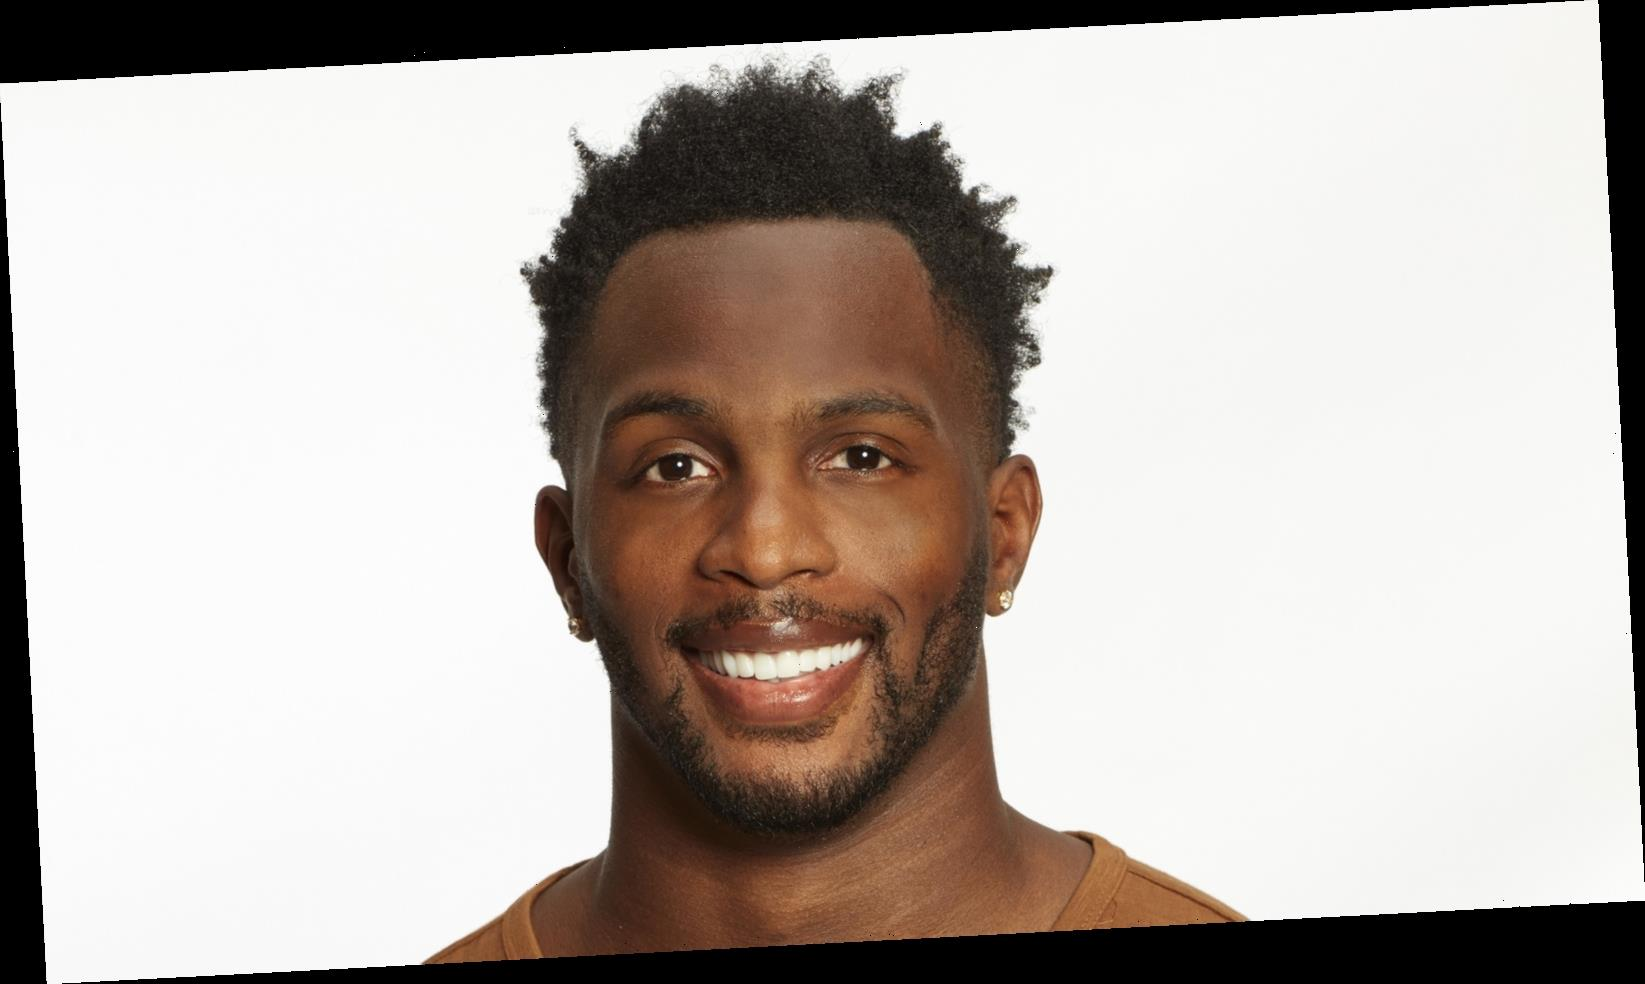 The Disturbing Allegations Against The Bachelorette's Uzoma 'Eazy' Nwachukwu